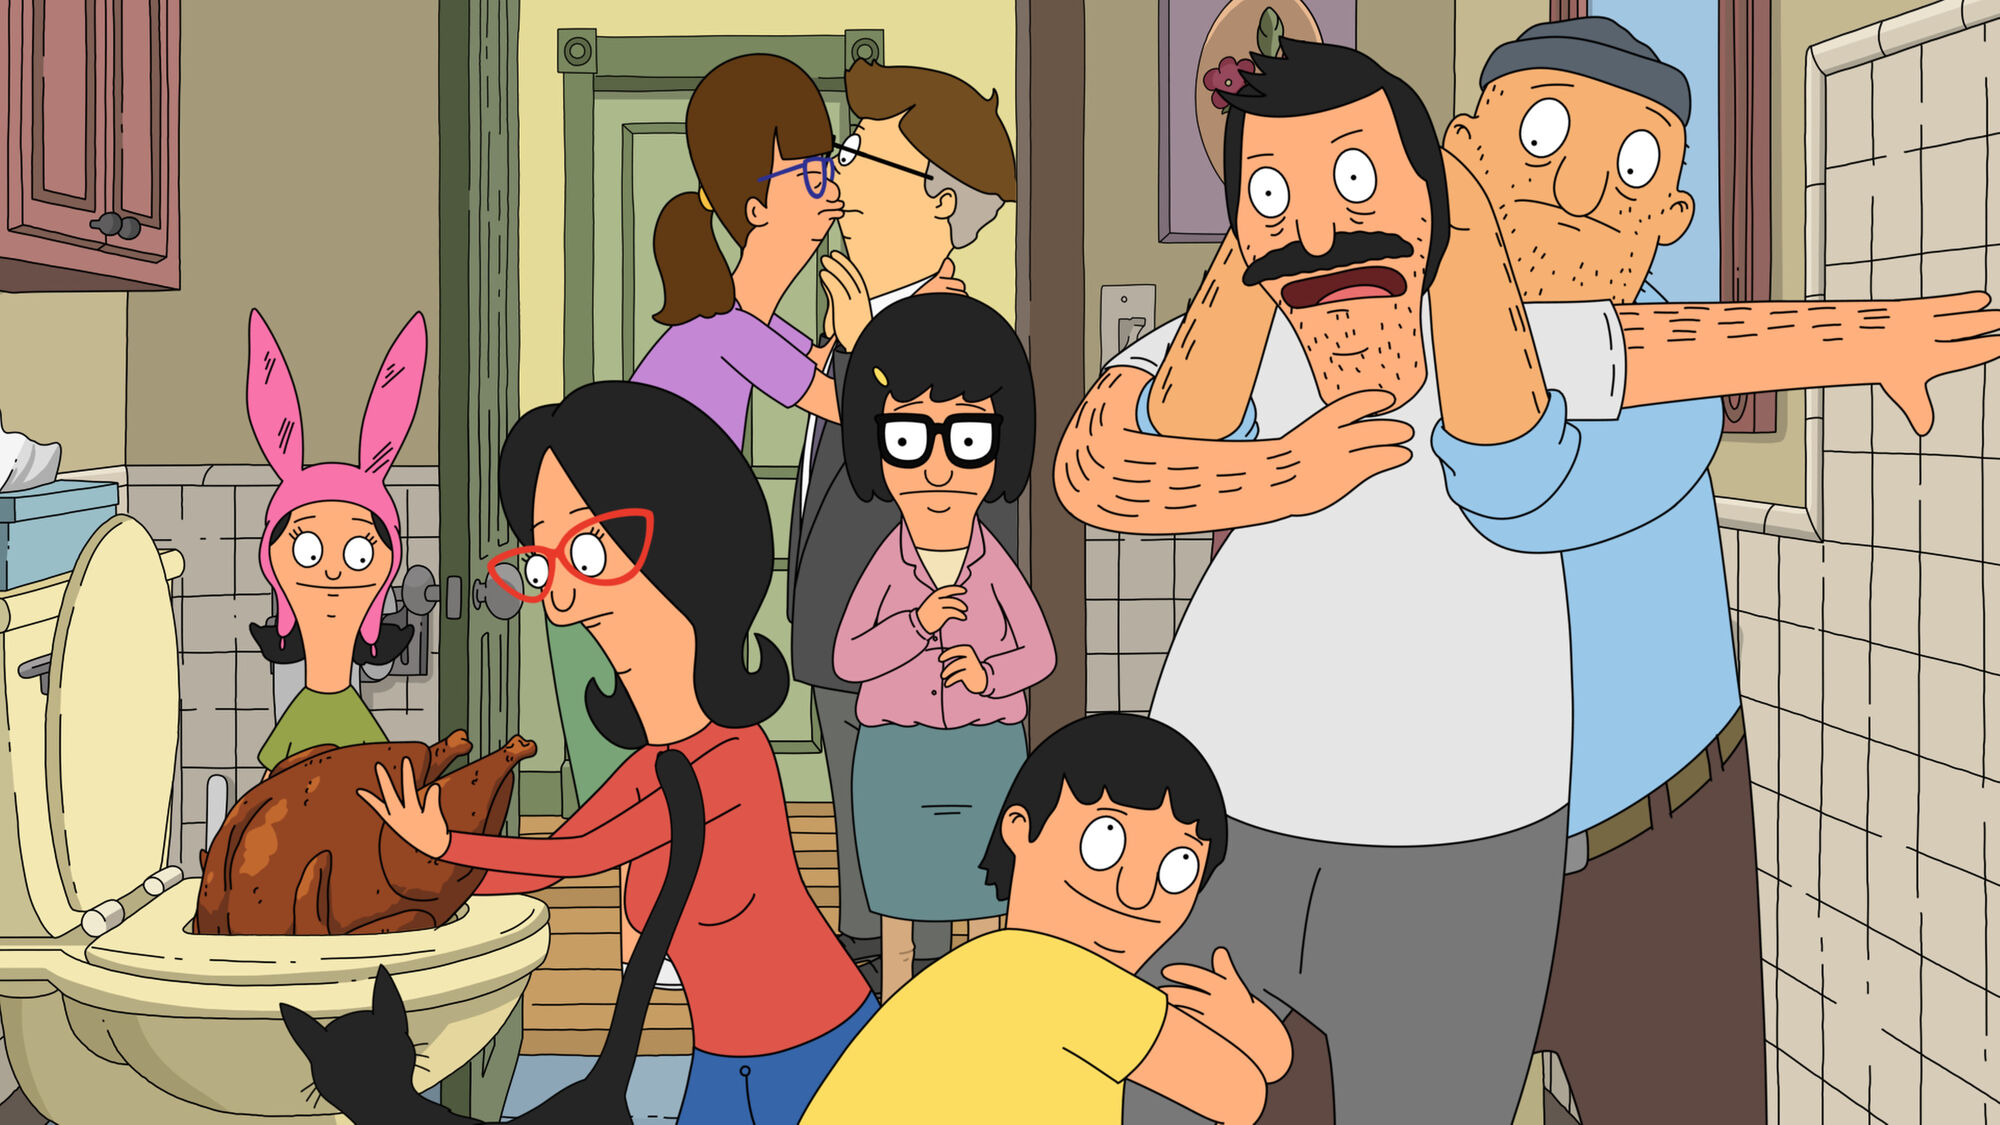 In Bob's Burgers' second Thanksgiving special, Teddy and Gene restrain Bob as Linda and Louise inspect the turkey. In the background, Gayle kisses a stunned Mort and Tina looks on with concern.